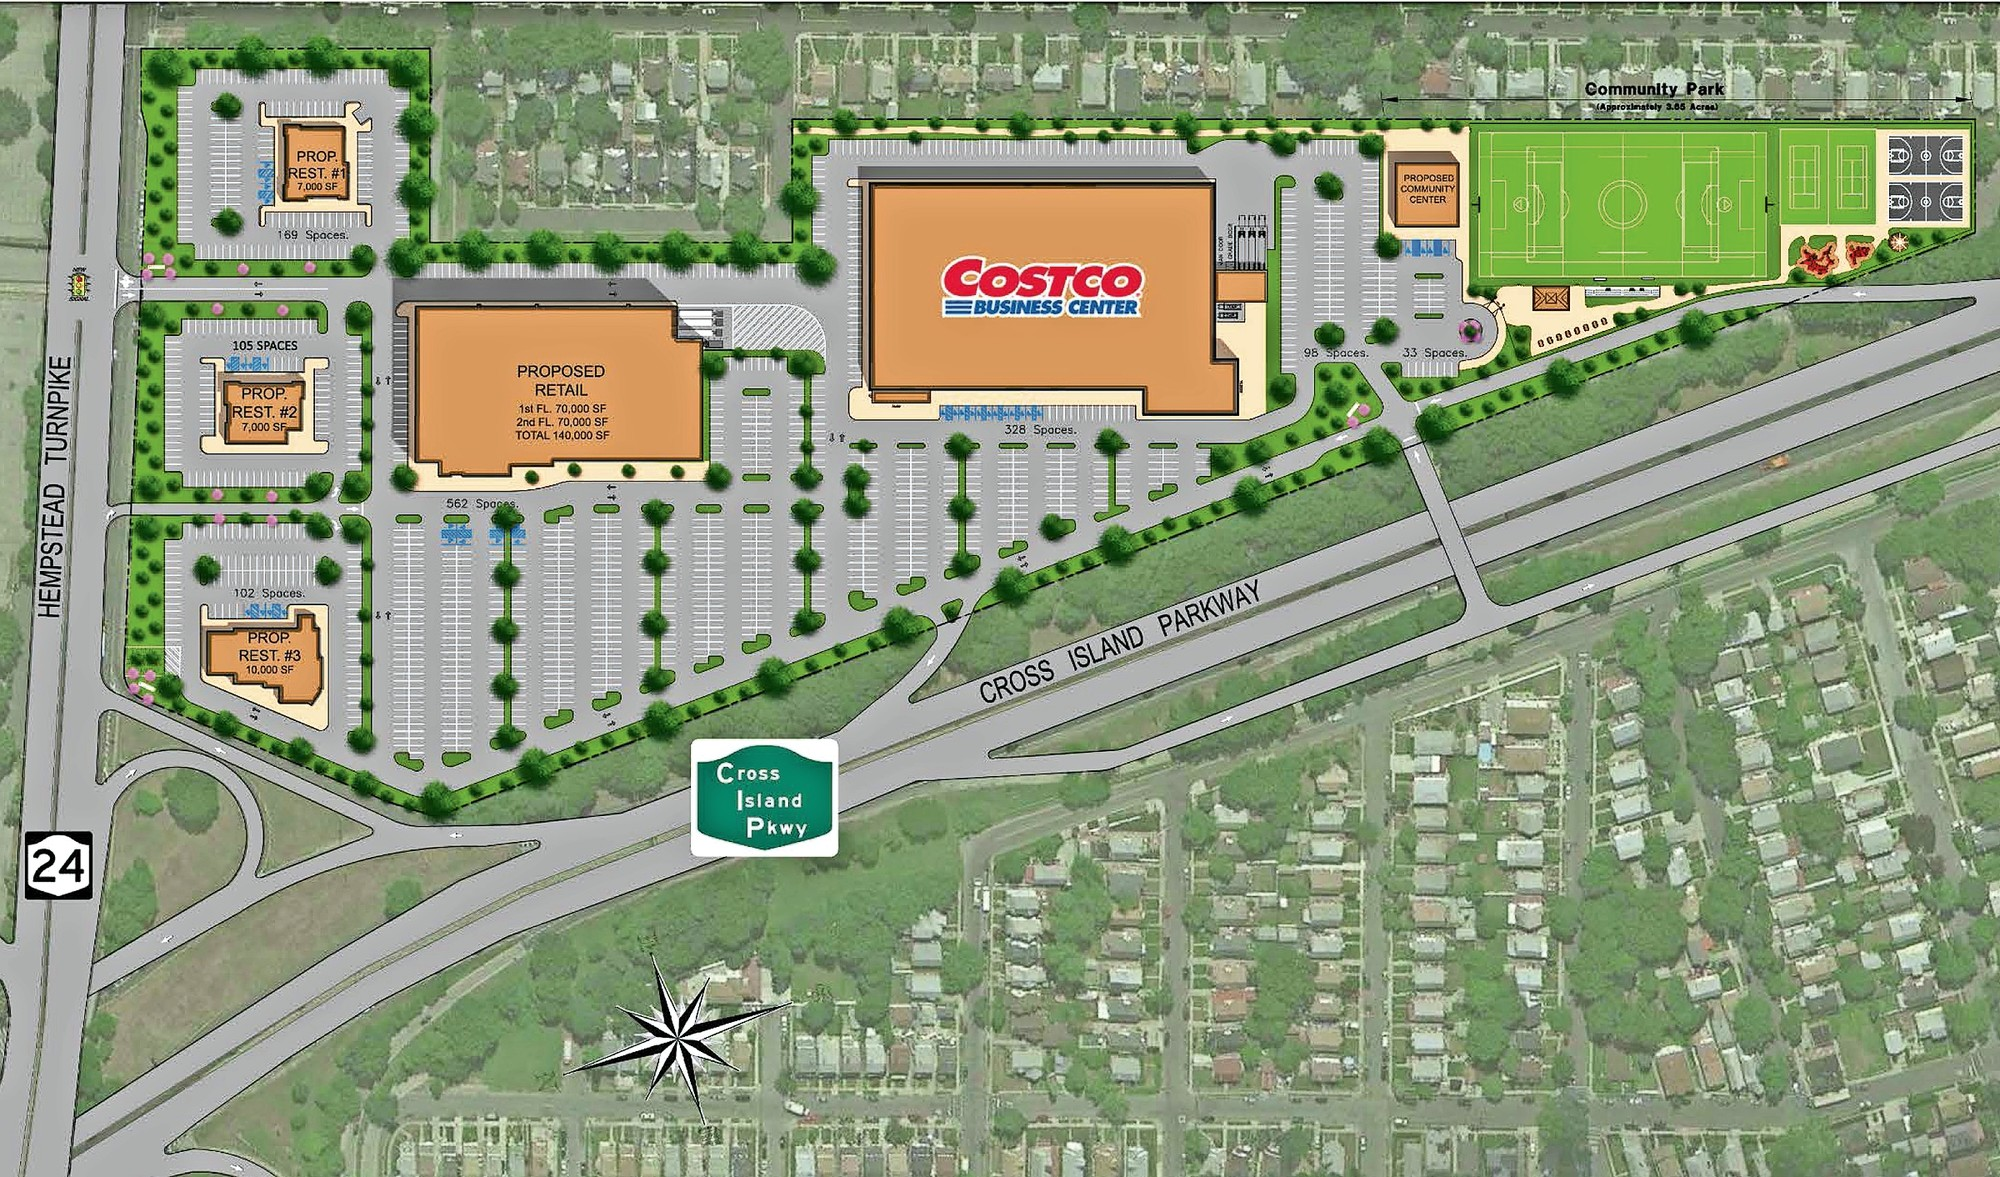 the blumenfeld development groups plan for belmont park consists of a smaller costco along with restaurants